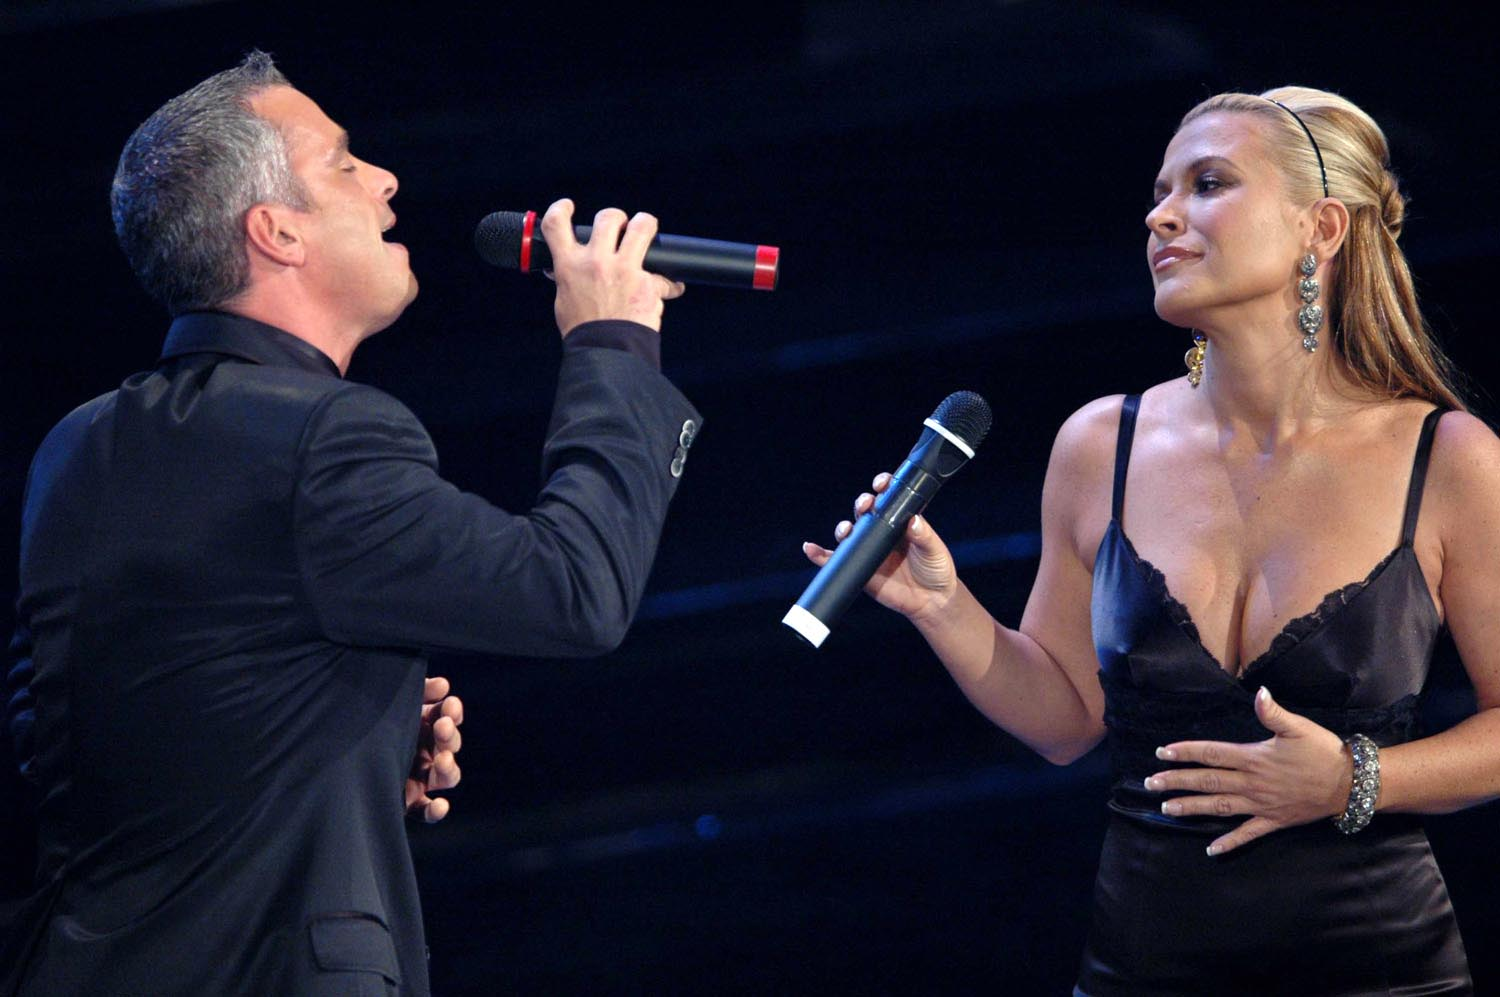 Eros Ramazzotti and Anastacia